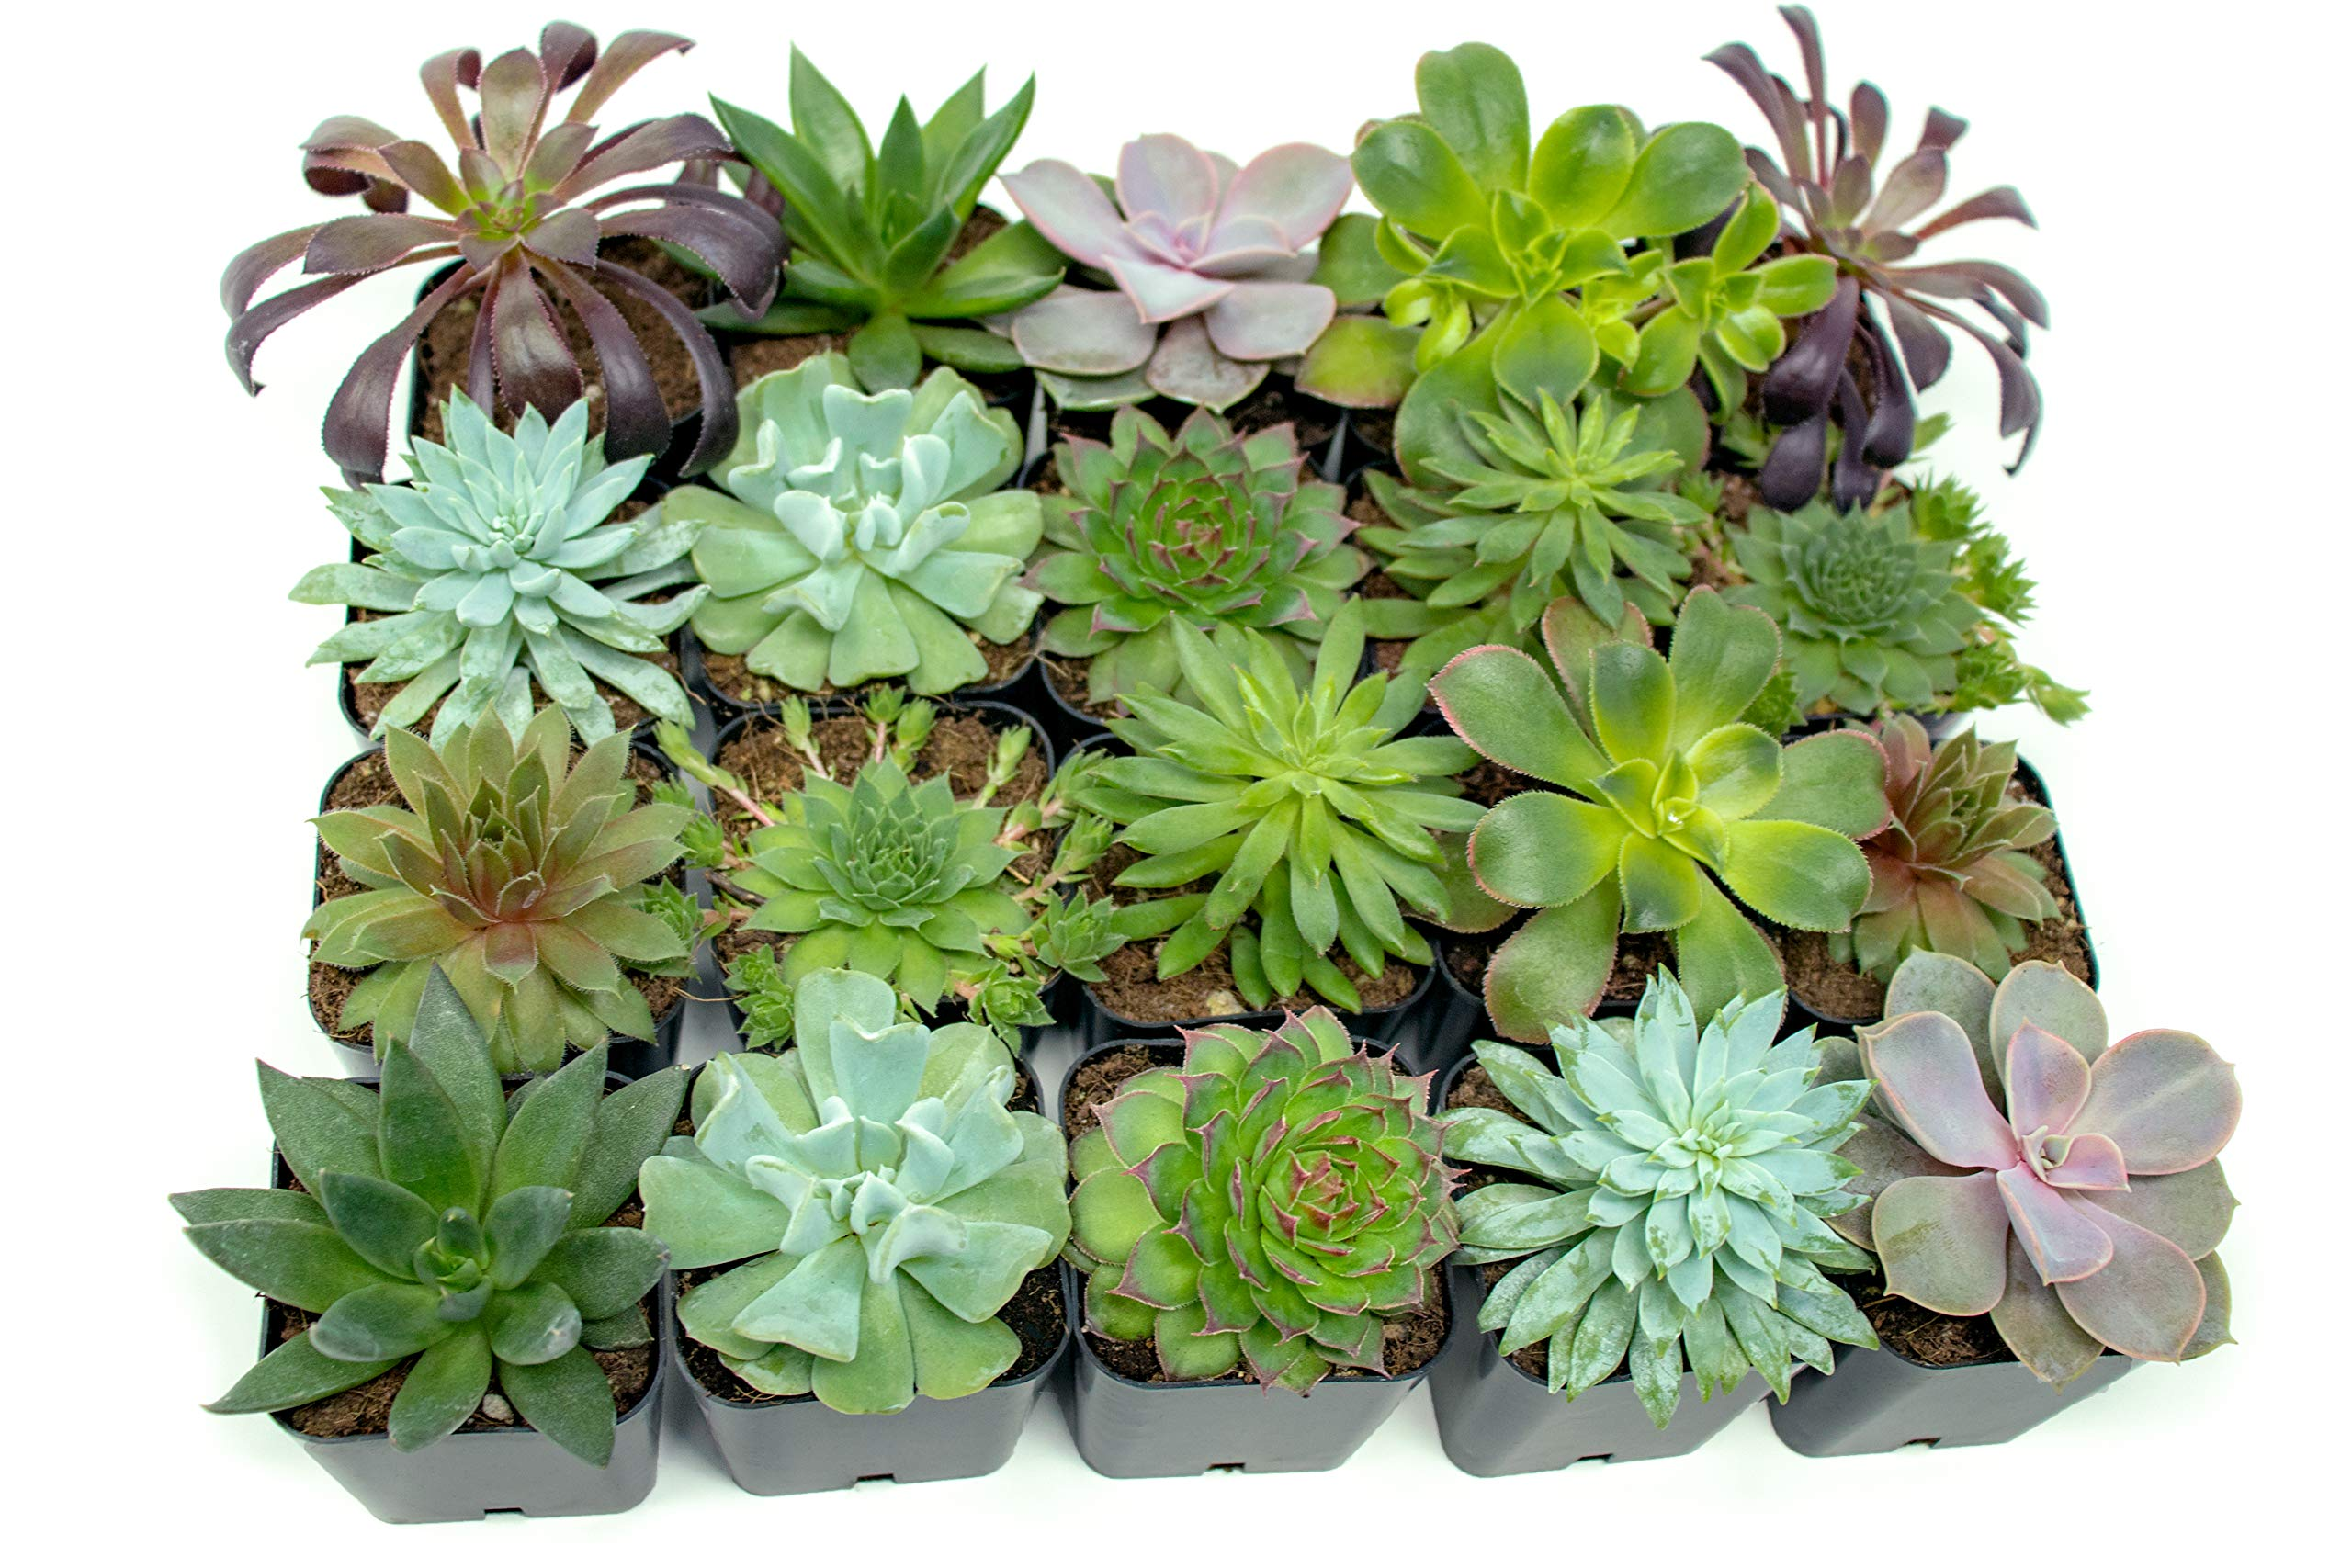 Succulent Plants (20 Pack) Fully Rooted in Planter Pots with Soil | Real Live Potted Succulents / Unique Indoor Cactus Decor by Plants for Pets 10 HAND SELECTED: Every pack of succulents we send is hand-picked. You will receive a unique collection of species that are fully rooted and similar to the product photos. Note that we rotate our nursery stock often, so the exact species we send changes every week. THE EASIEST HOUSE PLANTS: More appealing than artificial plastic or fake faux plants, and care is a cinch. If you think you can't keep houseplants alive, you're wrong; our succulents don't require fertilizer and can be planted in a decorative pot of your choice within seconds. DIY HOME DECOR: The possibilities are only limited by your imagination; display them in a plant holder, a wall mount, a geometric glass vase, or even in a live wreath. Because of their amazingly low care requirements, they can even make the perfect desk centerpiece for your office.